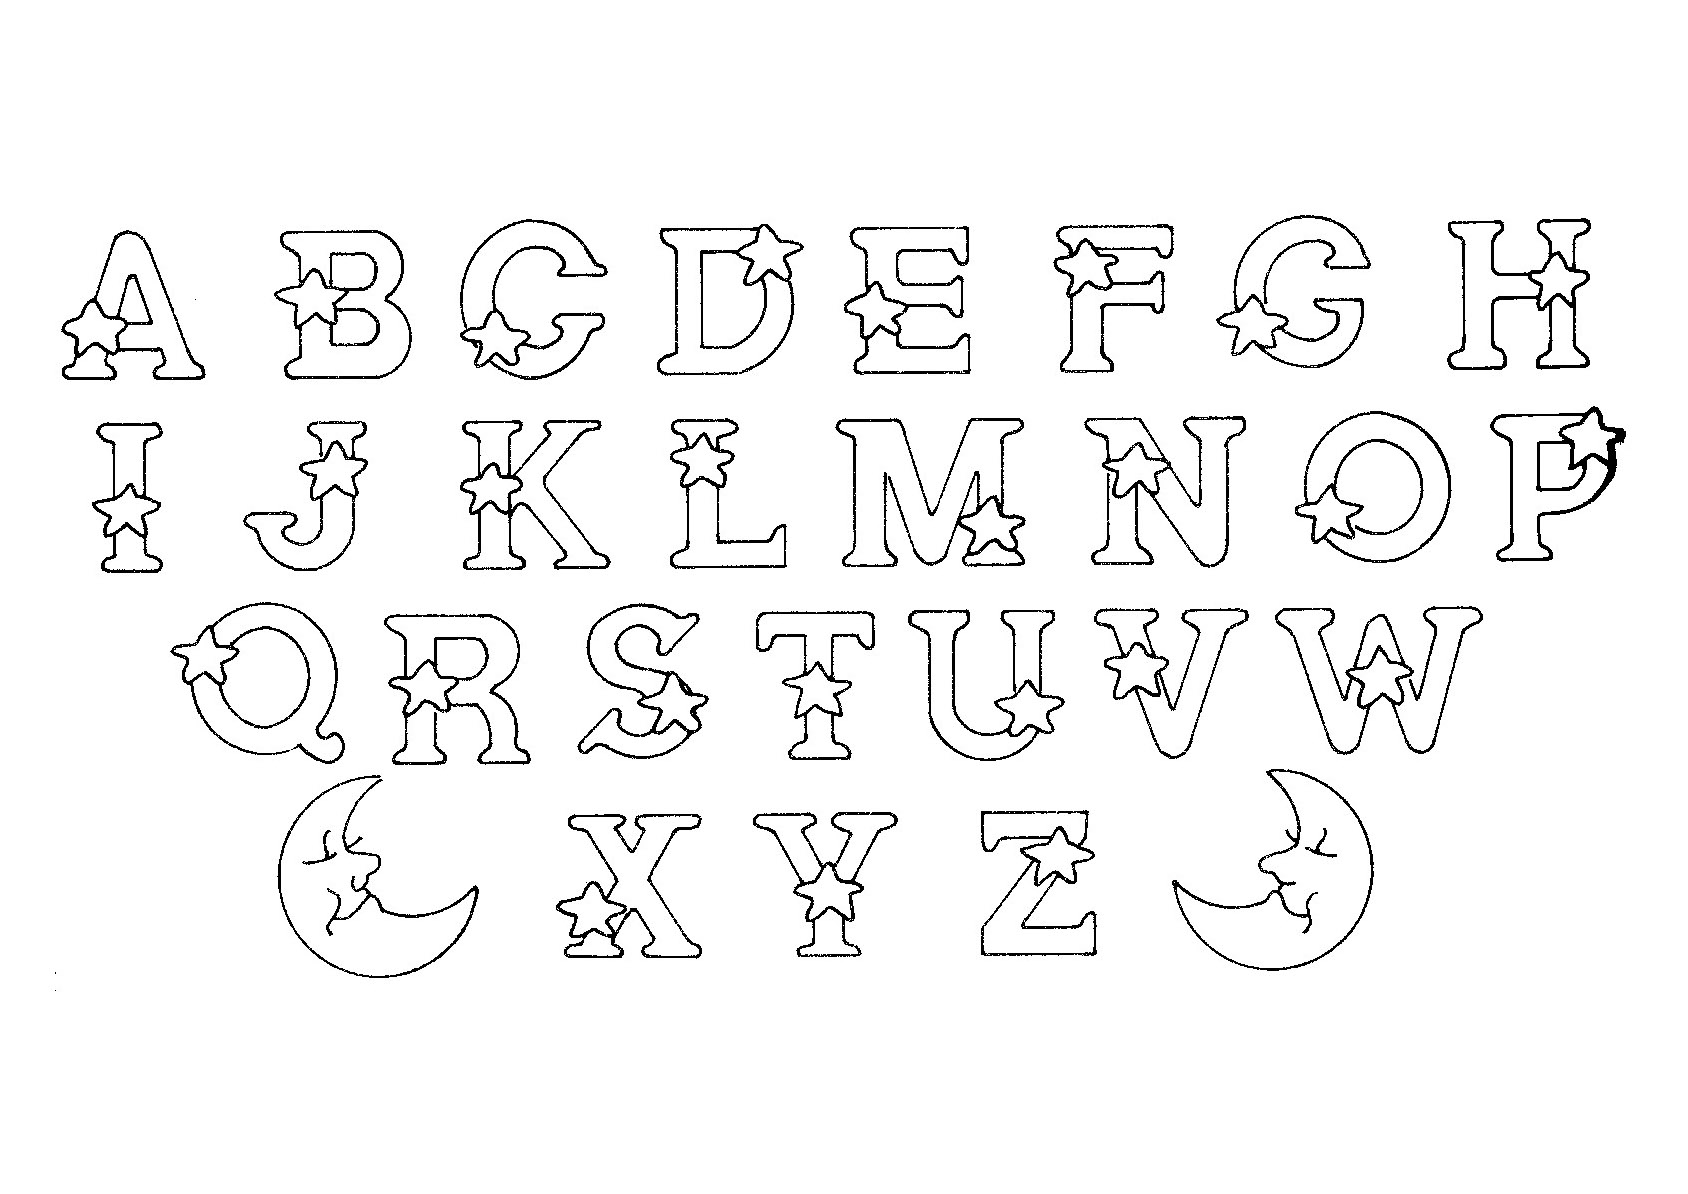 toddler abc coloring pages english for kids step by step printable alphabet coloring toddler pages abc coloring